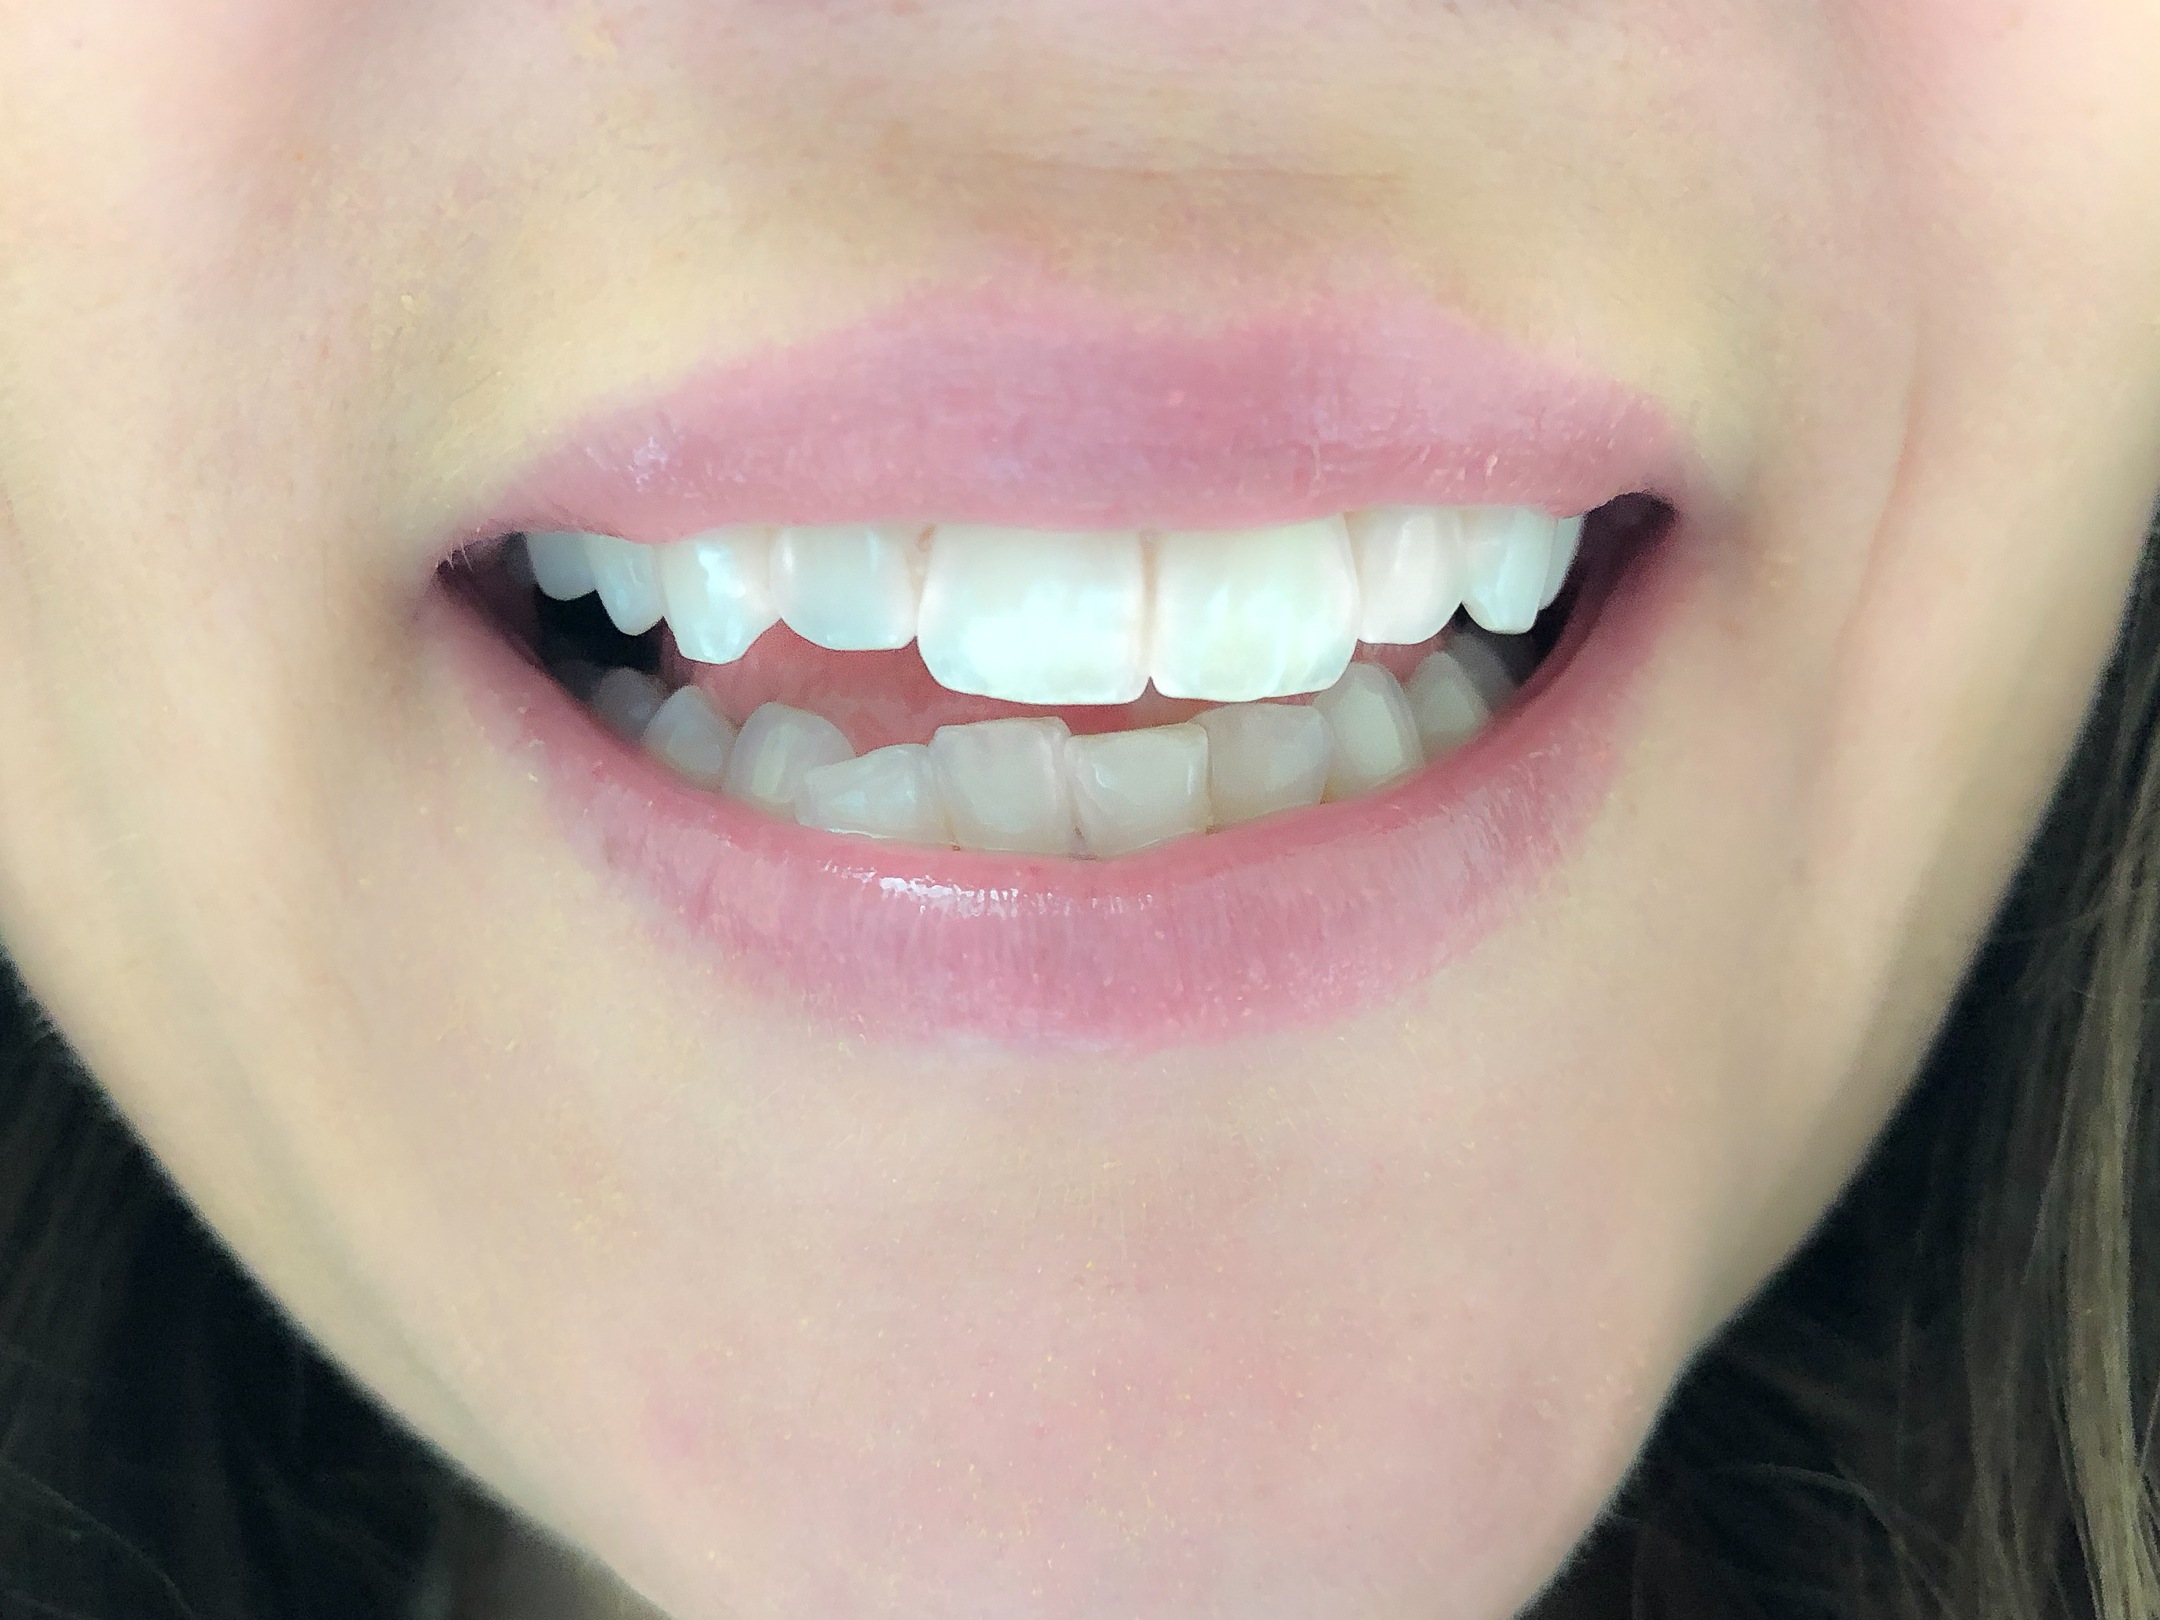 straighten crooked teeth at home without needing to see an orthodontist, fastest most affordable way to straighten teeth, candid co